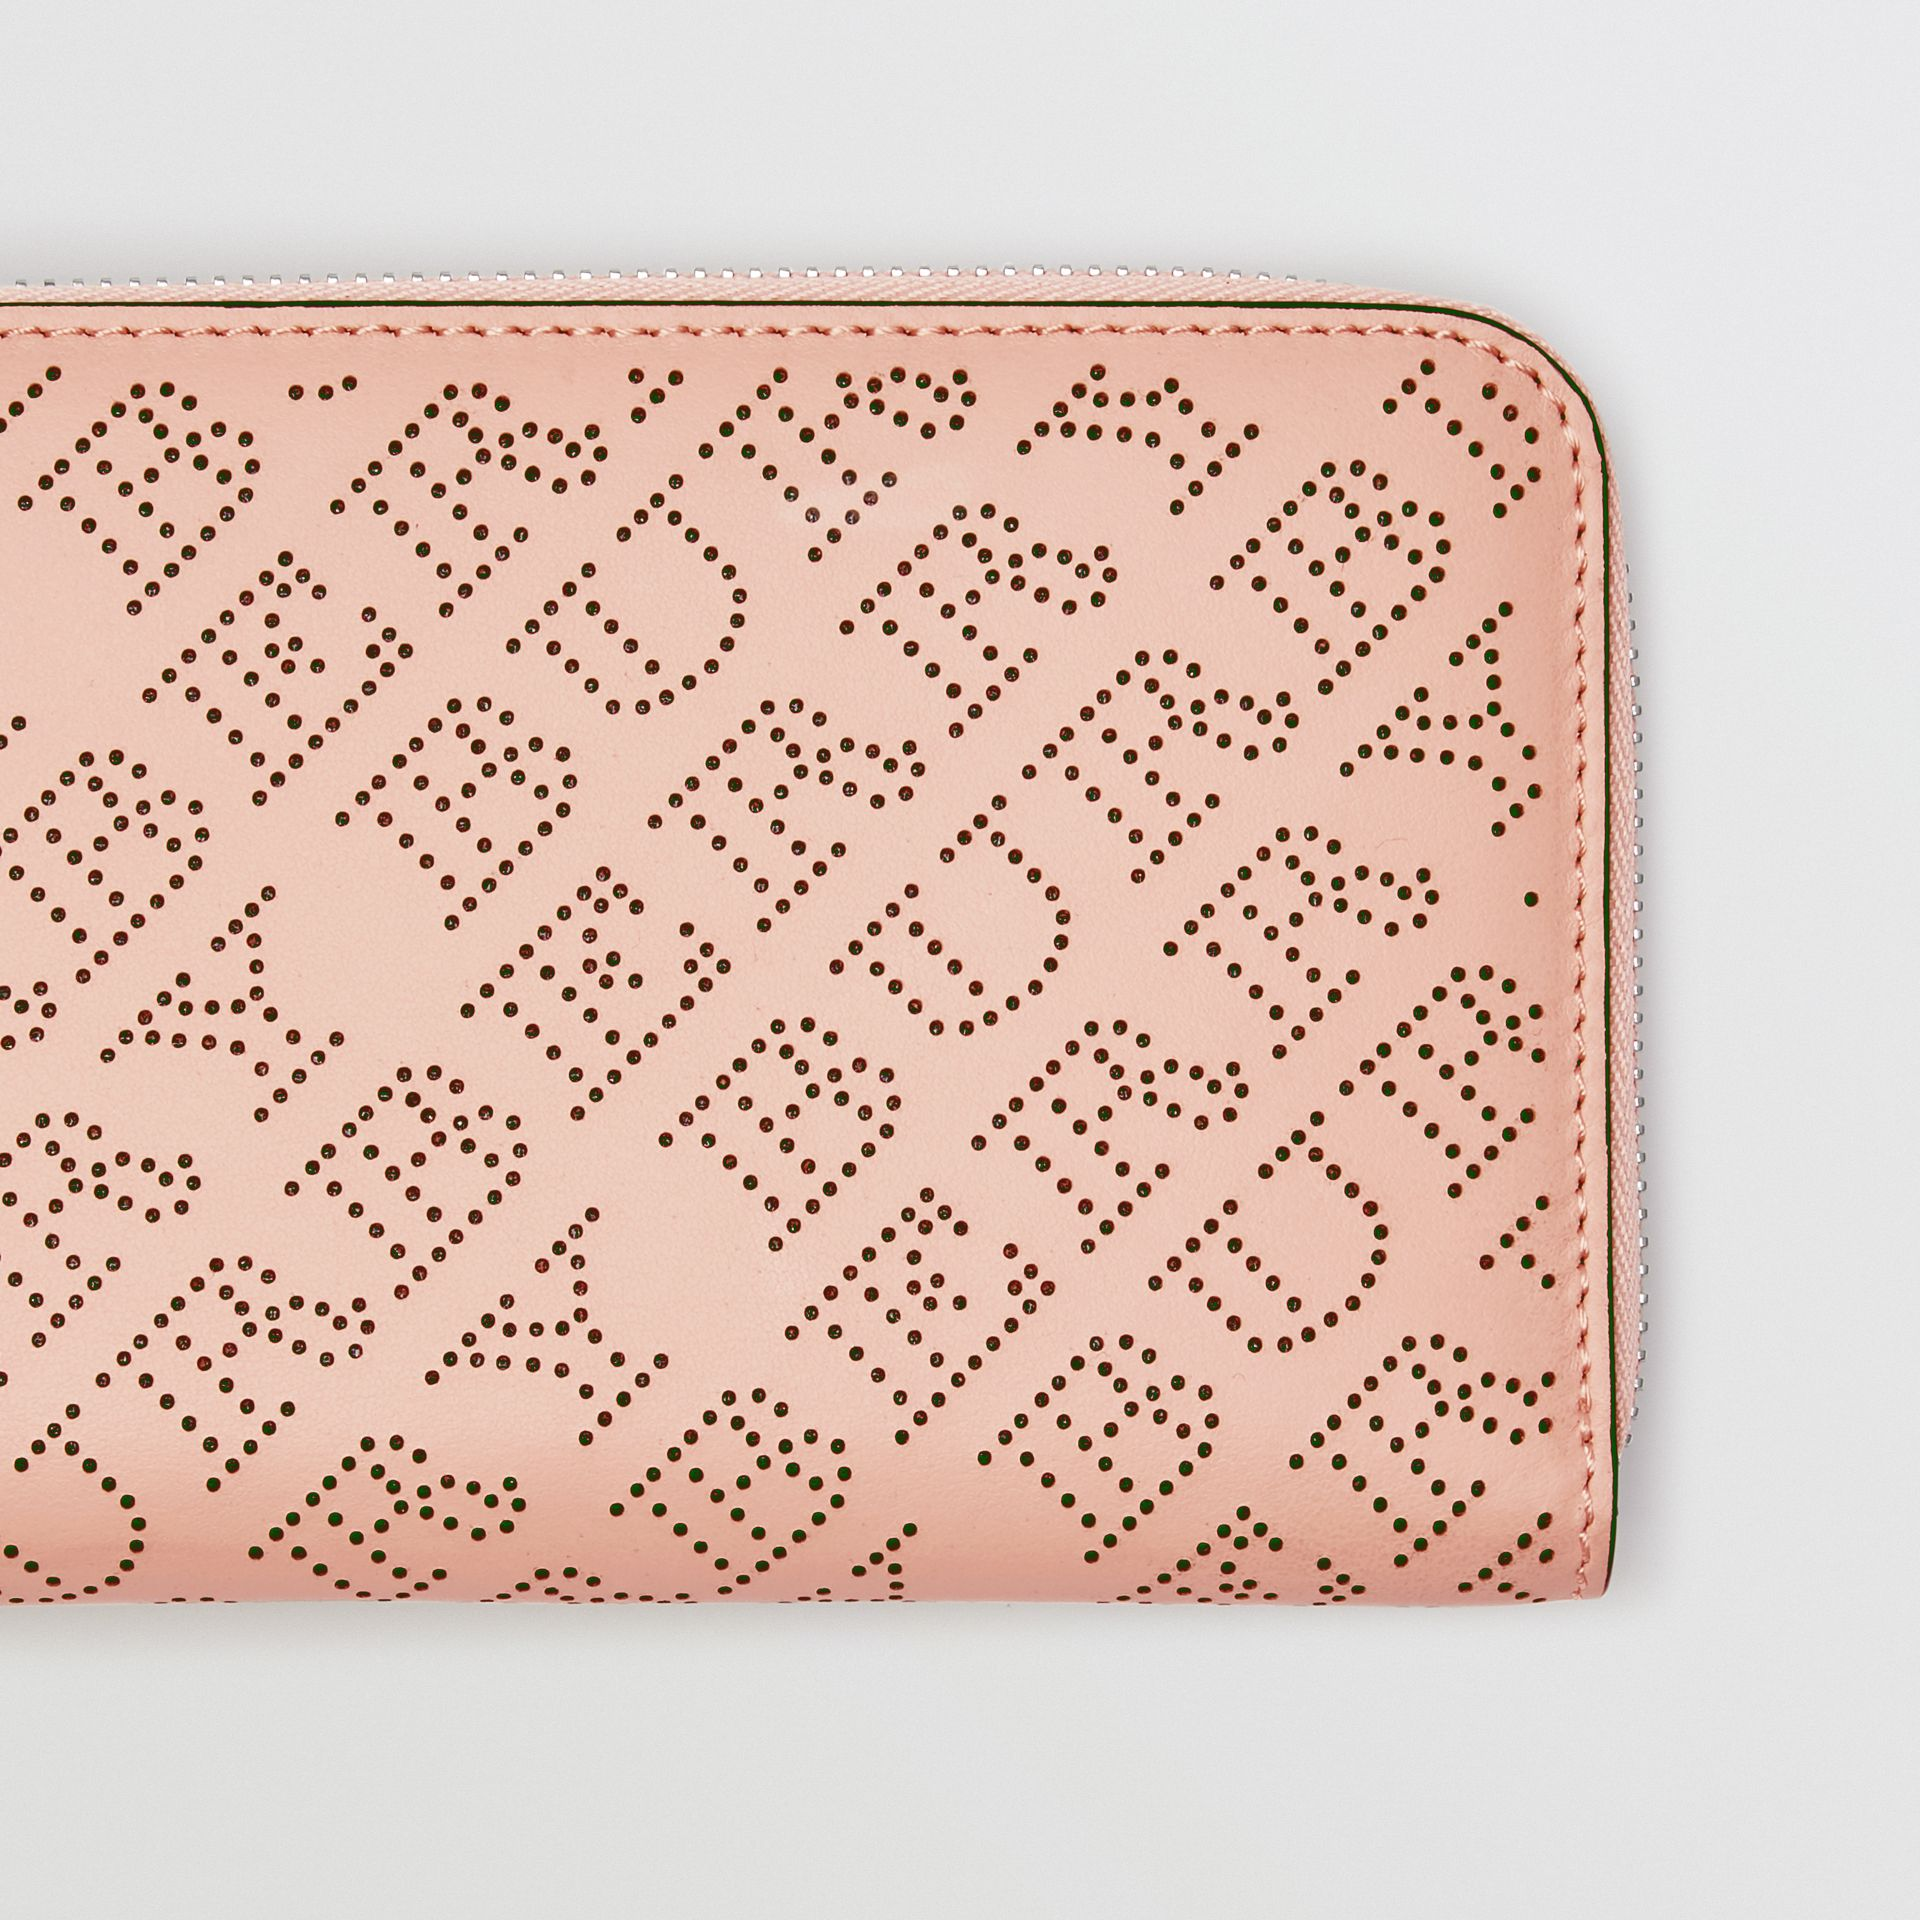 Perforated Leather Ziparound Wallet in Pale Fawn Pink - Women | Burberry - gallery image 1